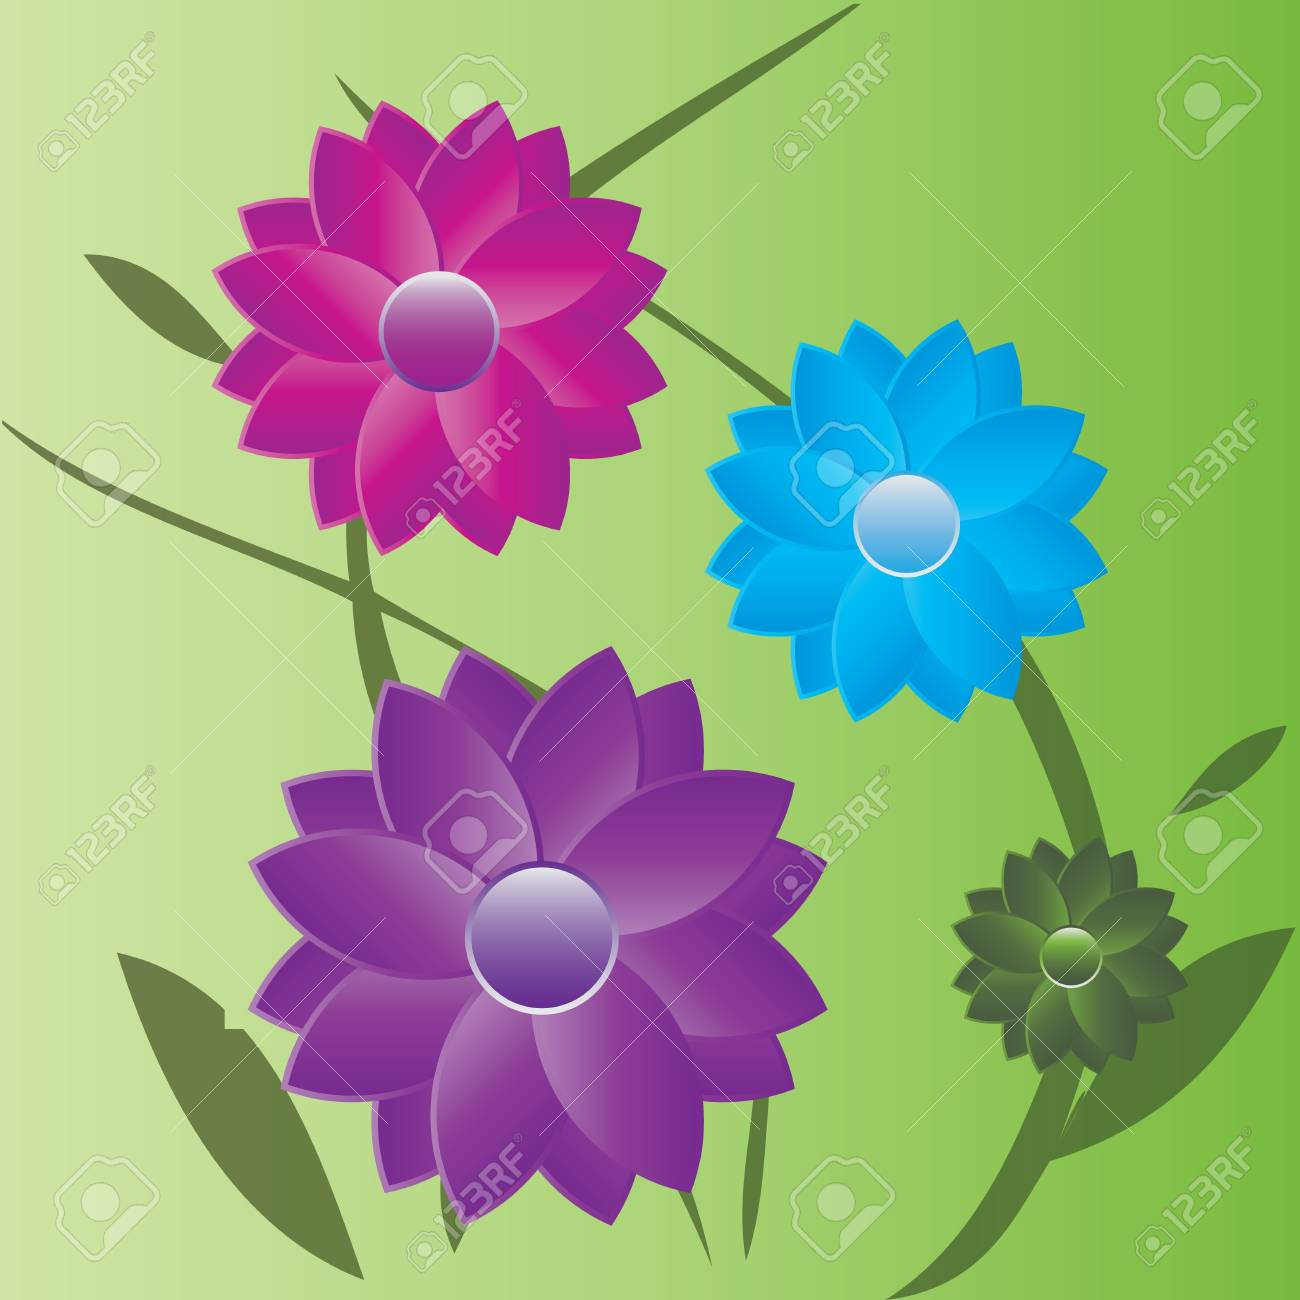 Summer flowers with leaves isolated on green background Stock Vector - 14940065